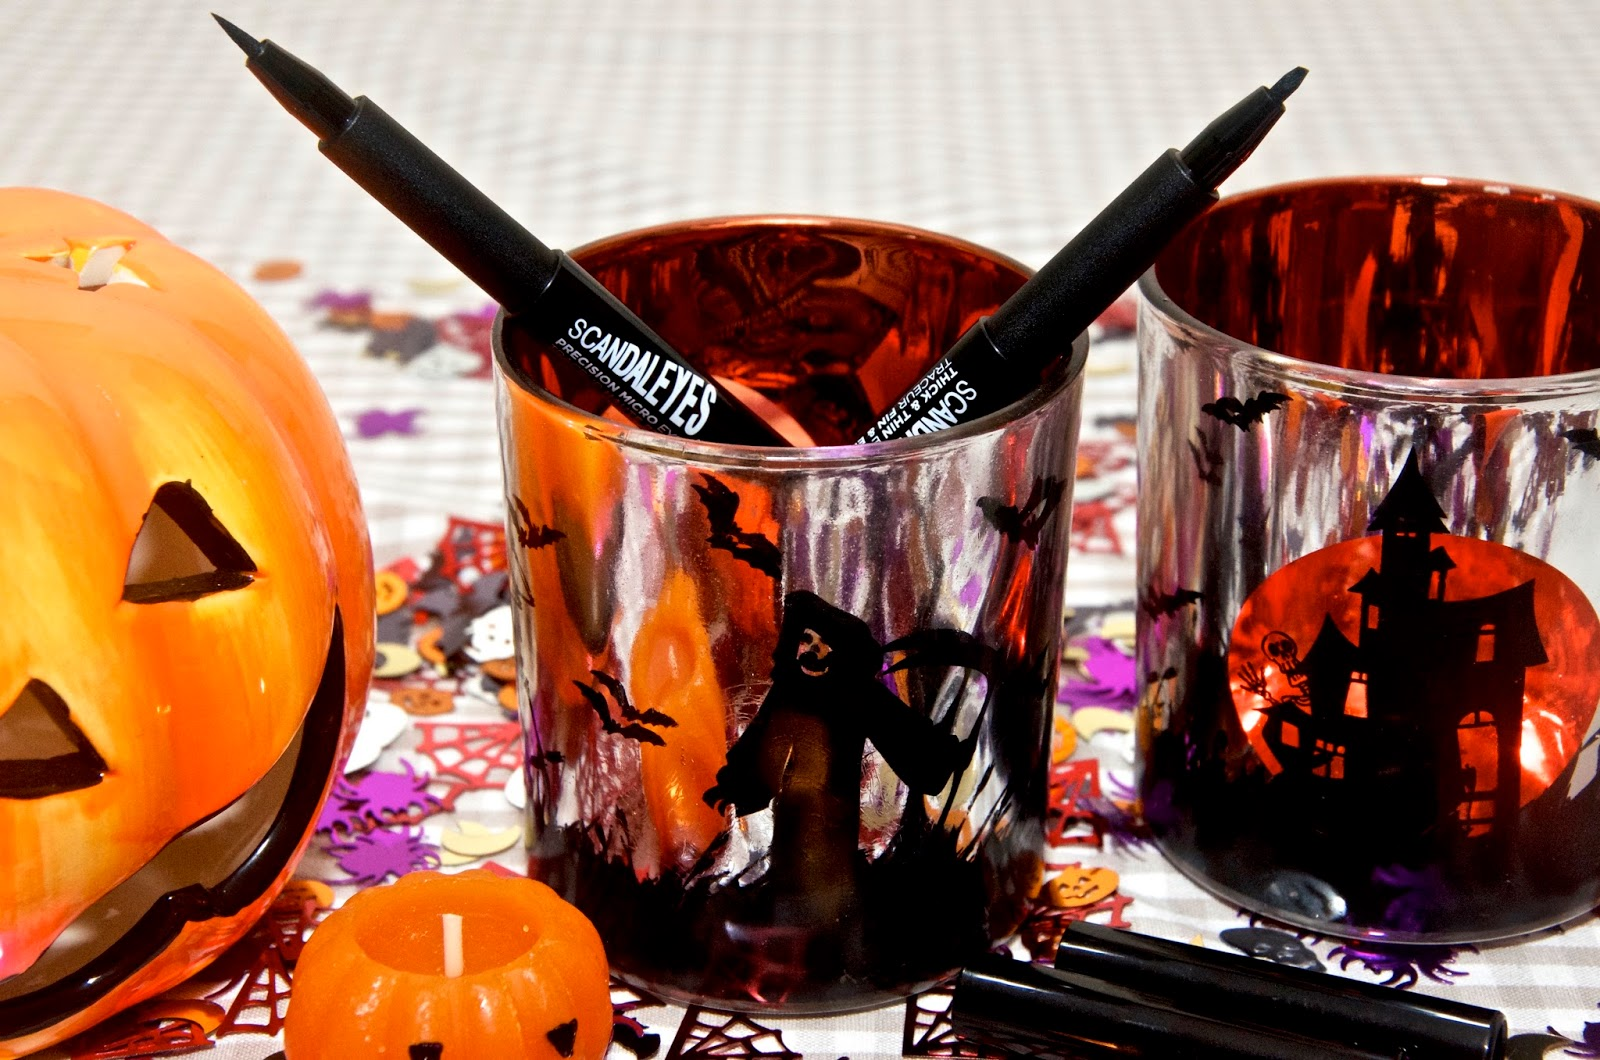 Two Eyeliner Pens in Halloween Votive Holders with Pumpkins and confetti